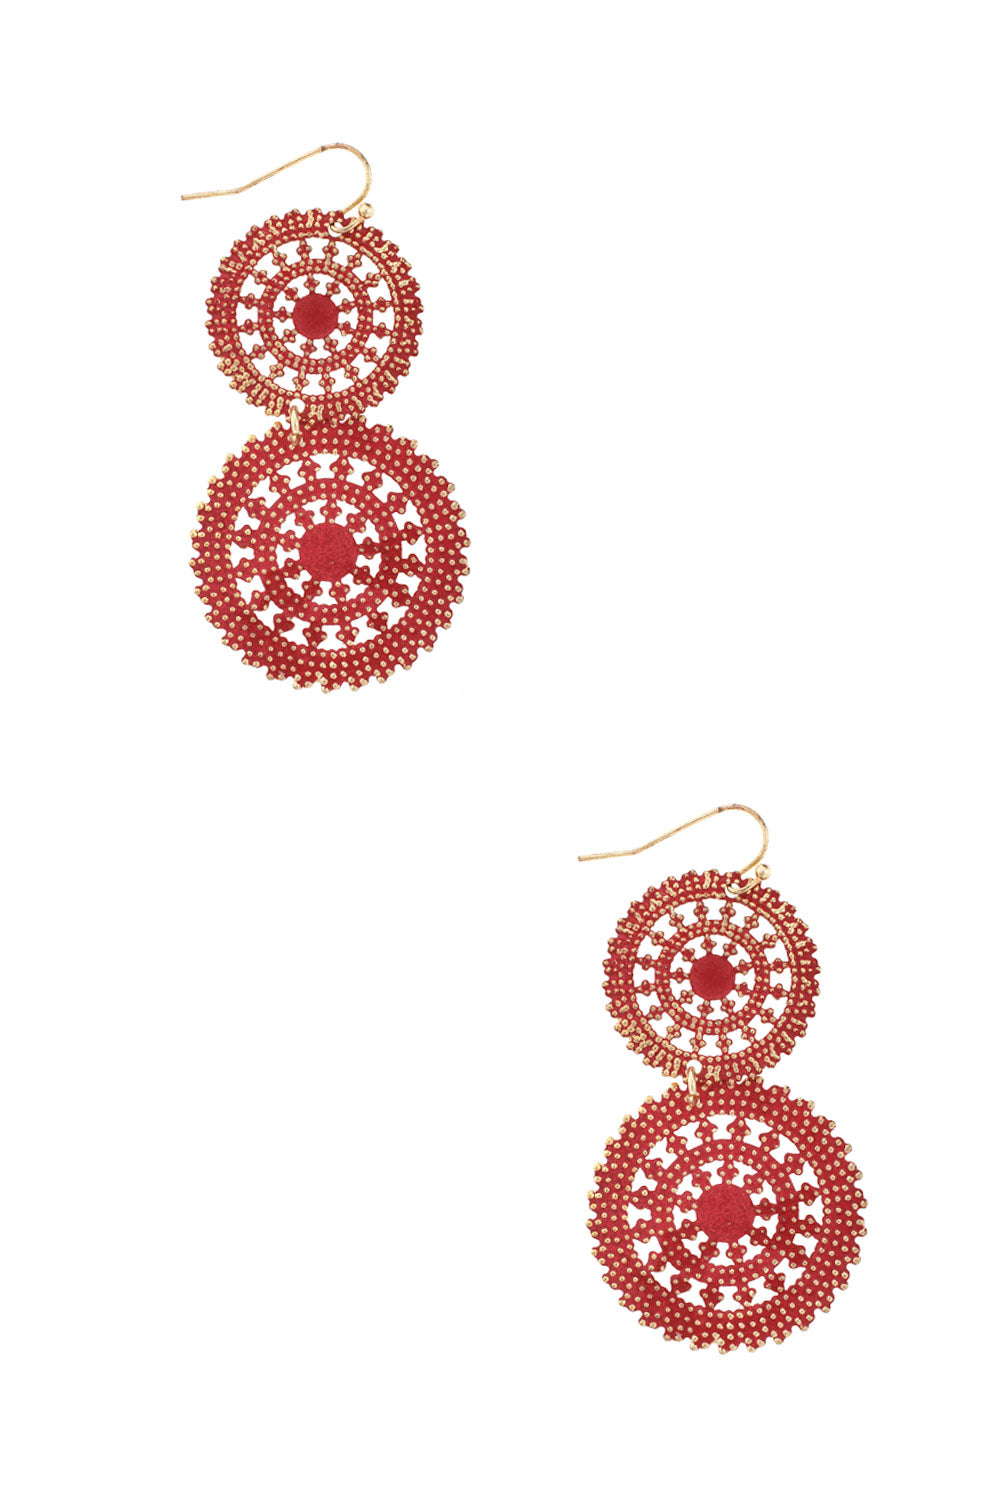 Type 1 Double Ferris Wheel Earrings